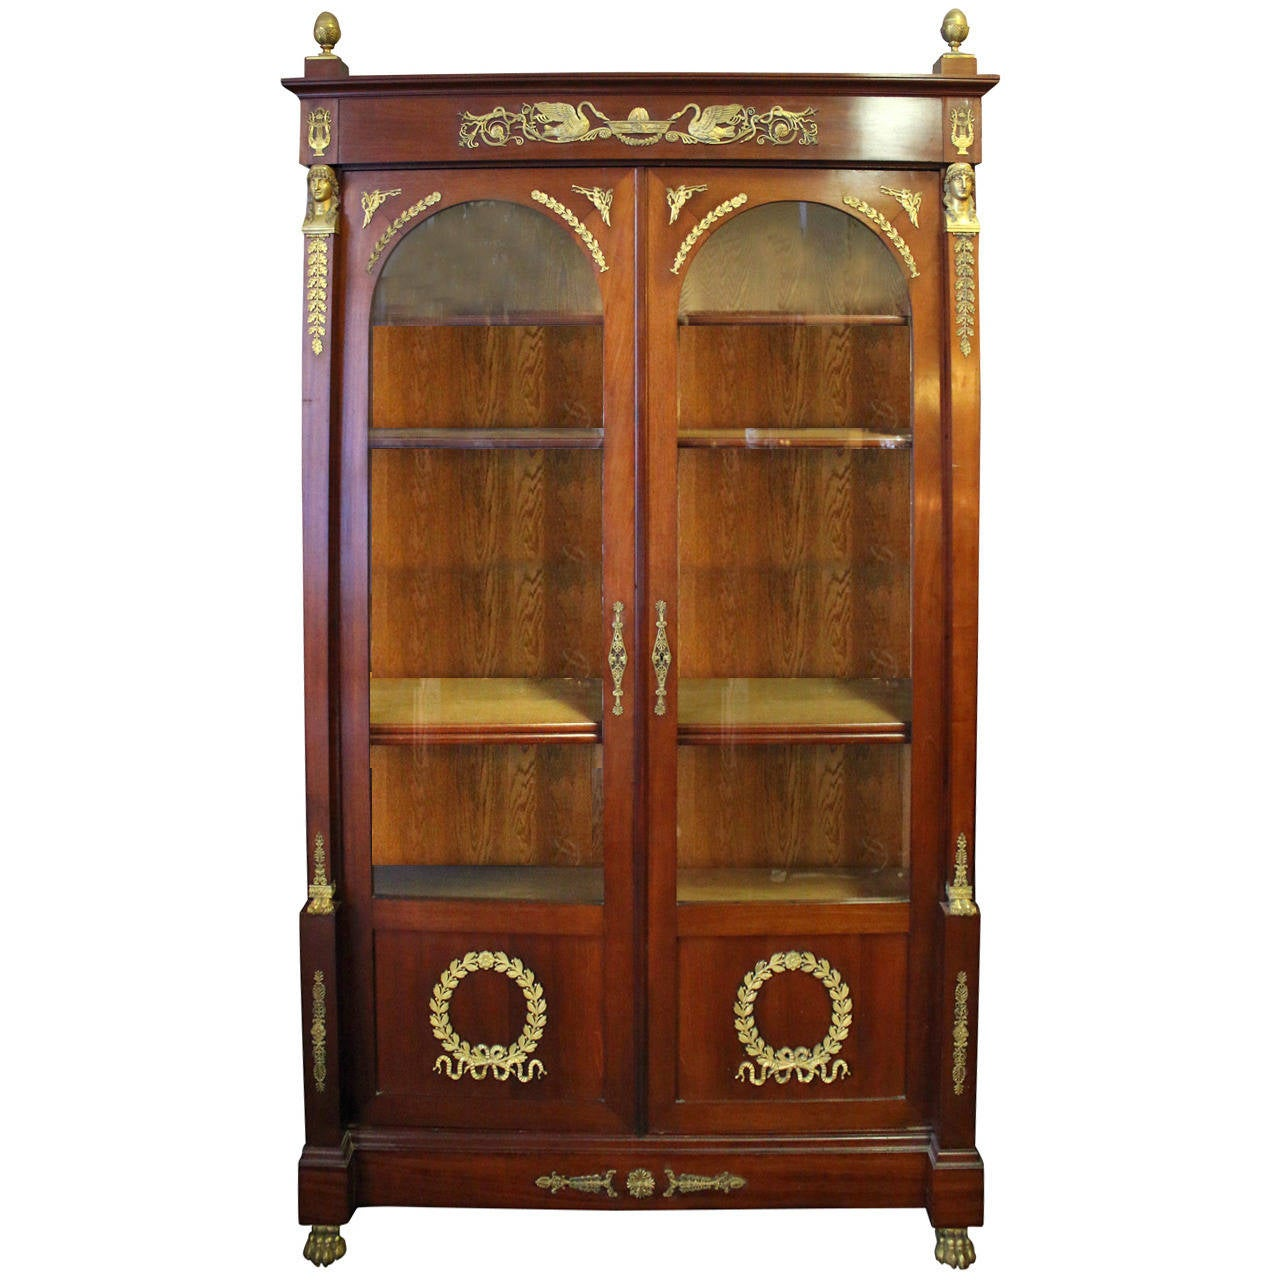 19th Century Empire Style French Mahogany Bookcase For Sale at 1stdibs